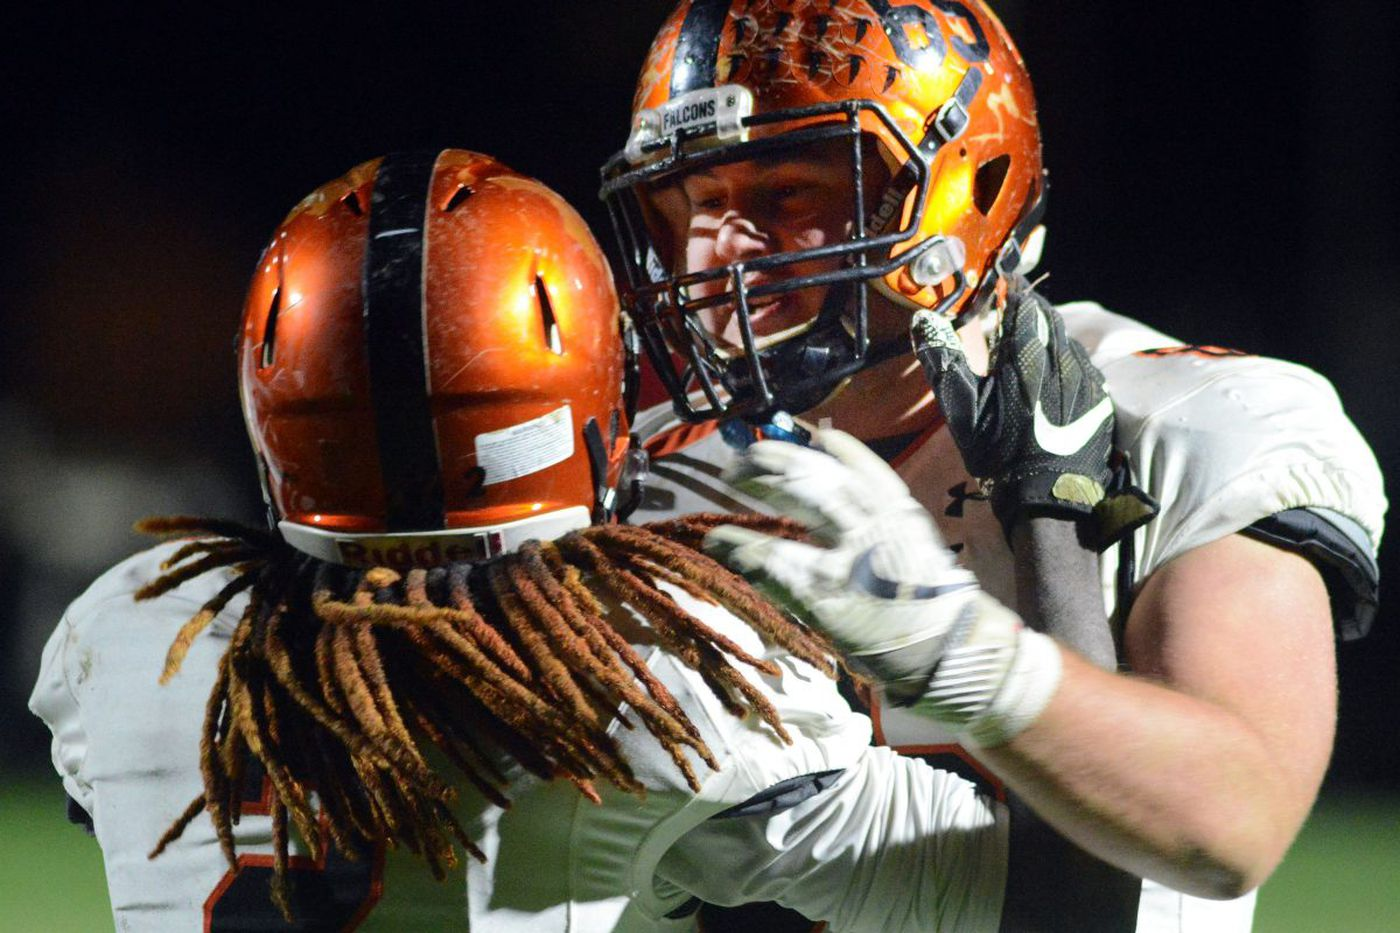 Falcons avenge loss to Redskins in PIAA District 1 6A quarterfinal